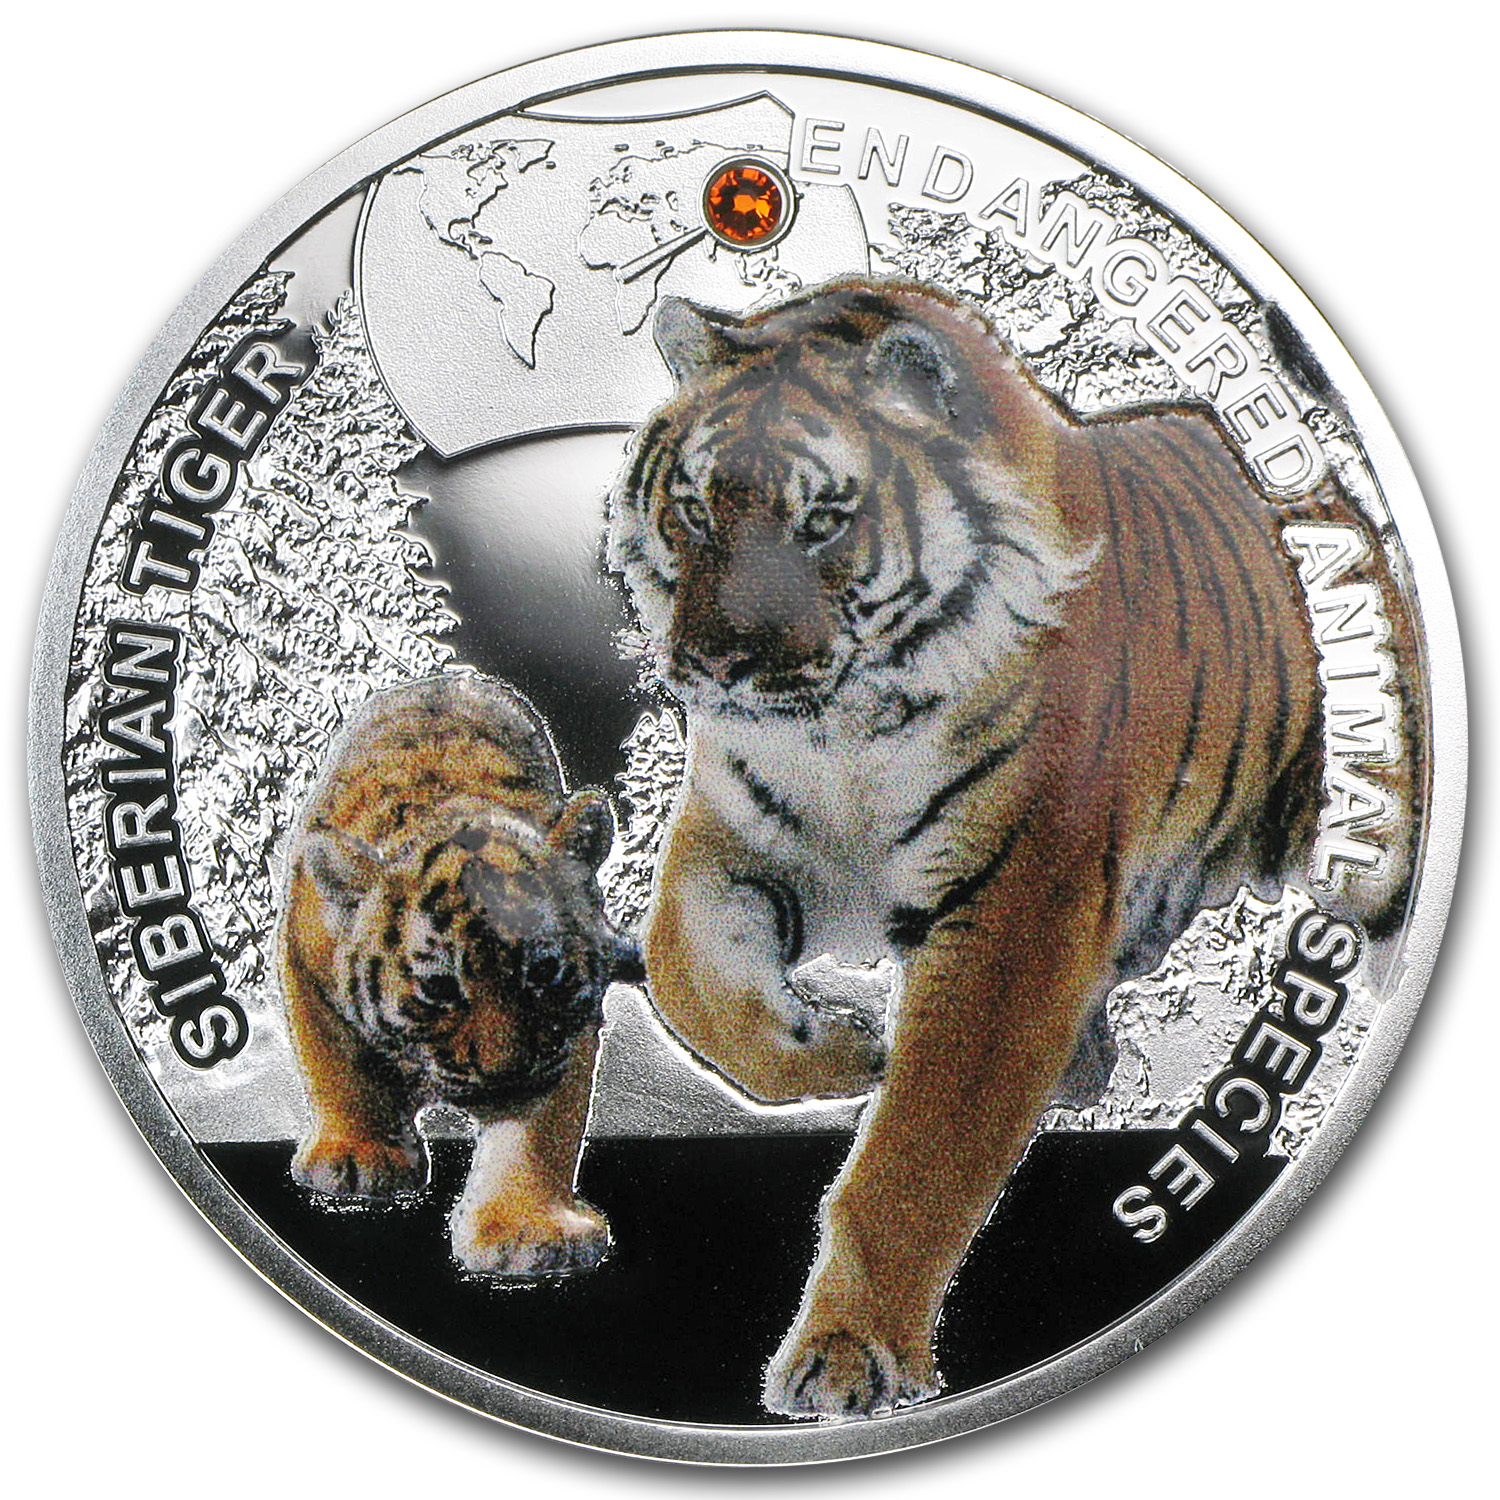 2014 Niue Proof Silver Endangered Animal Species Siberian Tiger